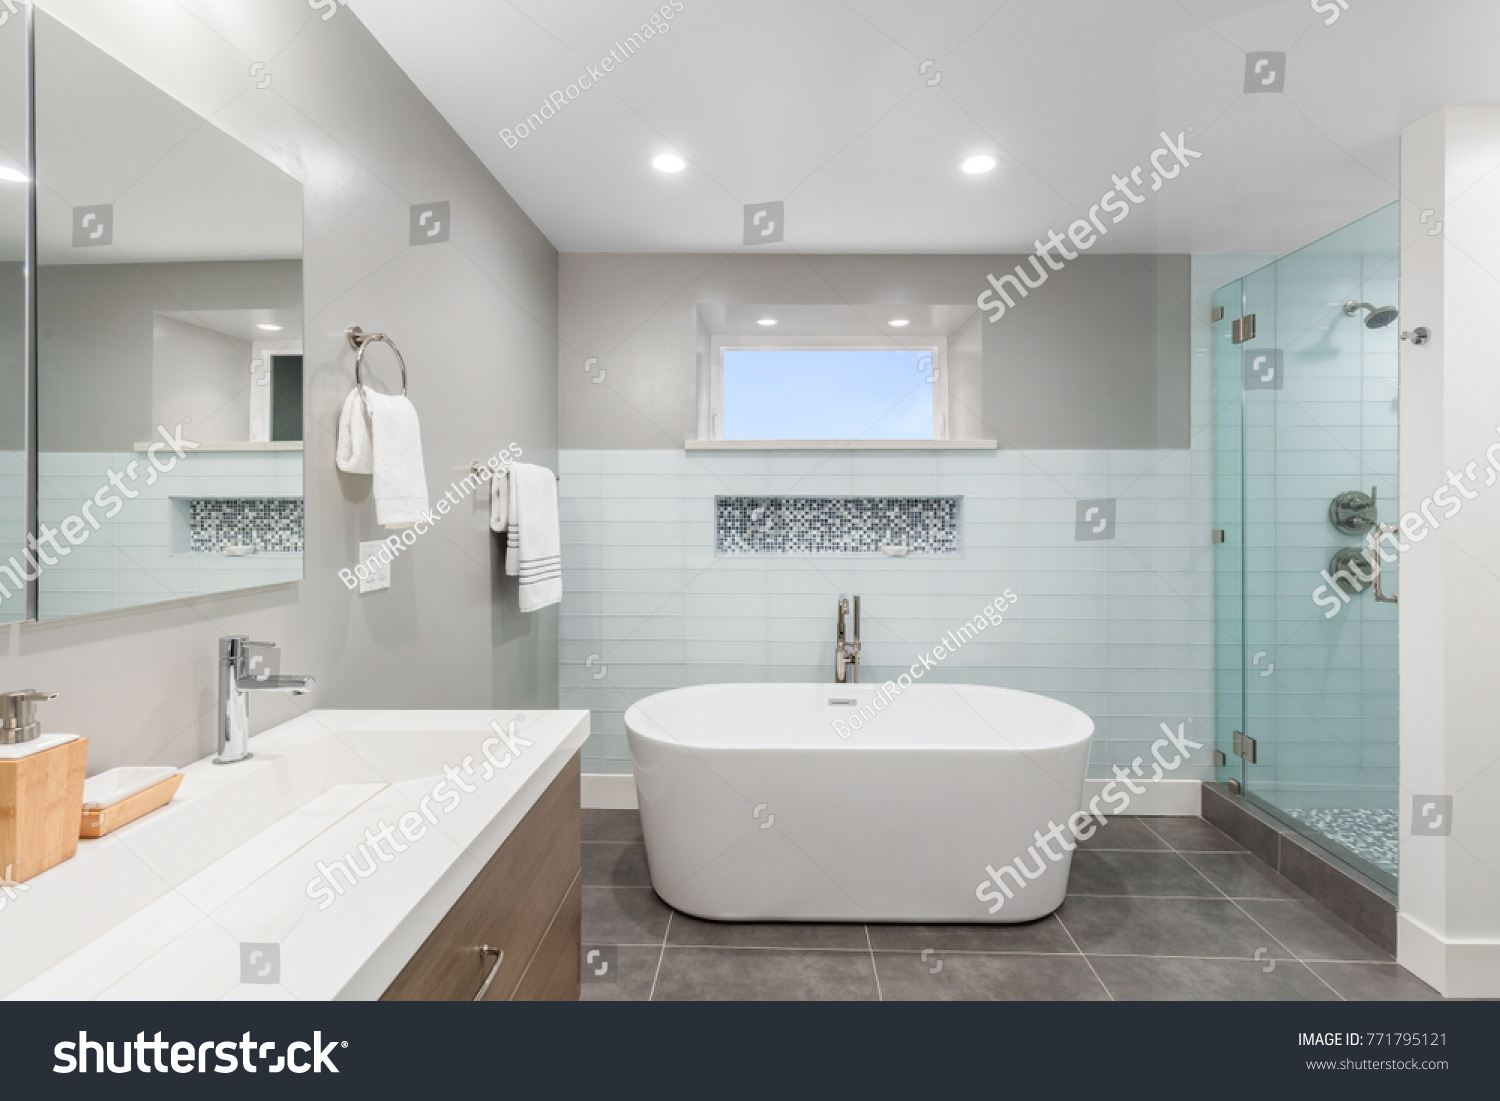 Luxury bathroom interior with an oval bathtub stone tiles and with ...